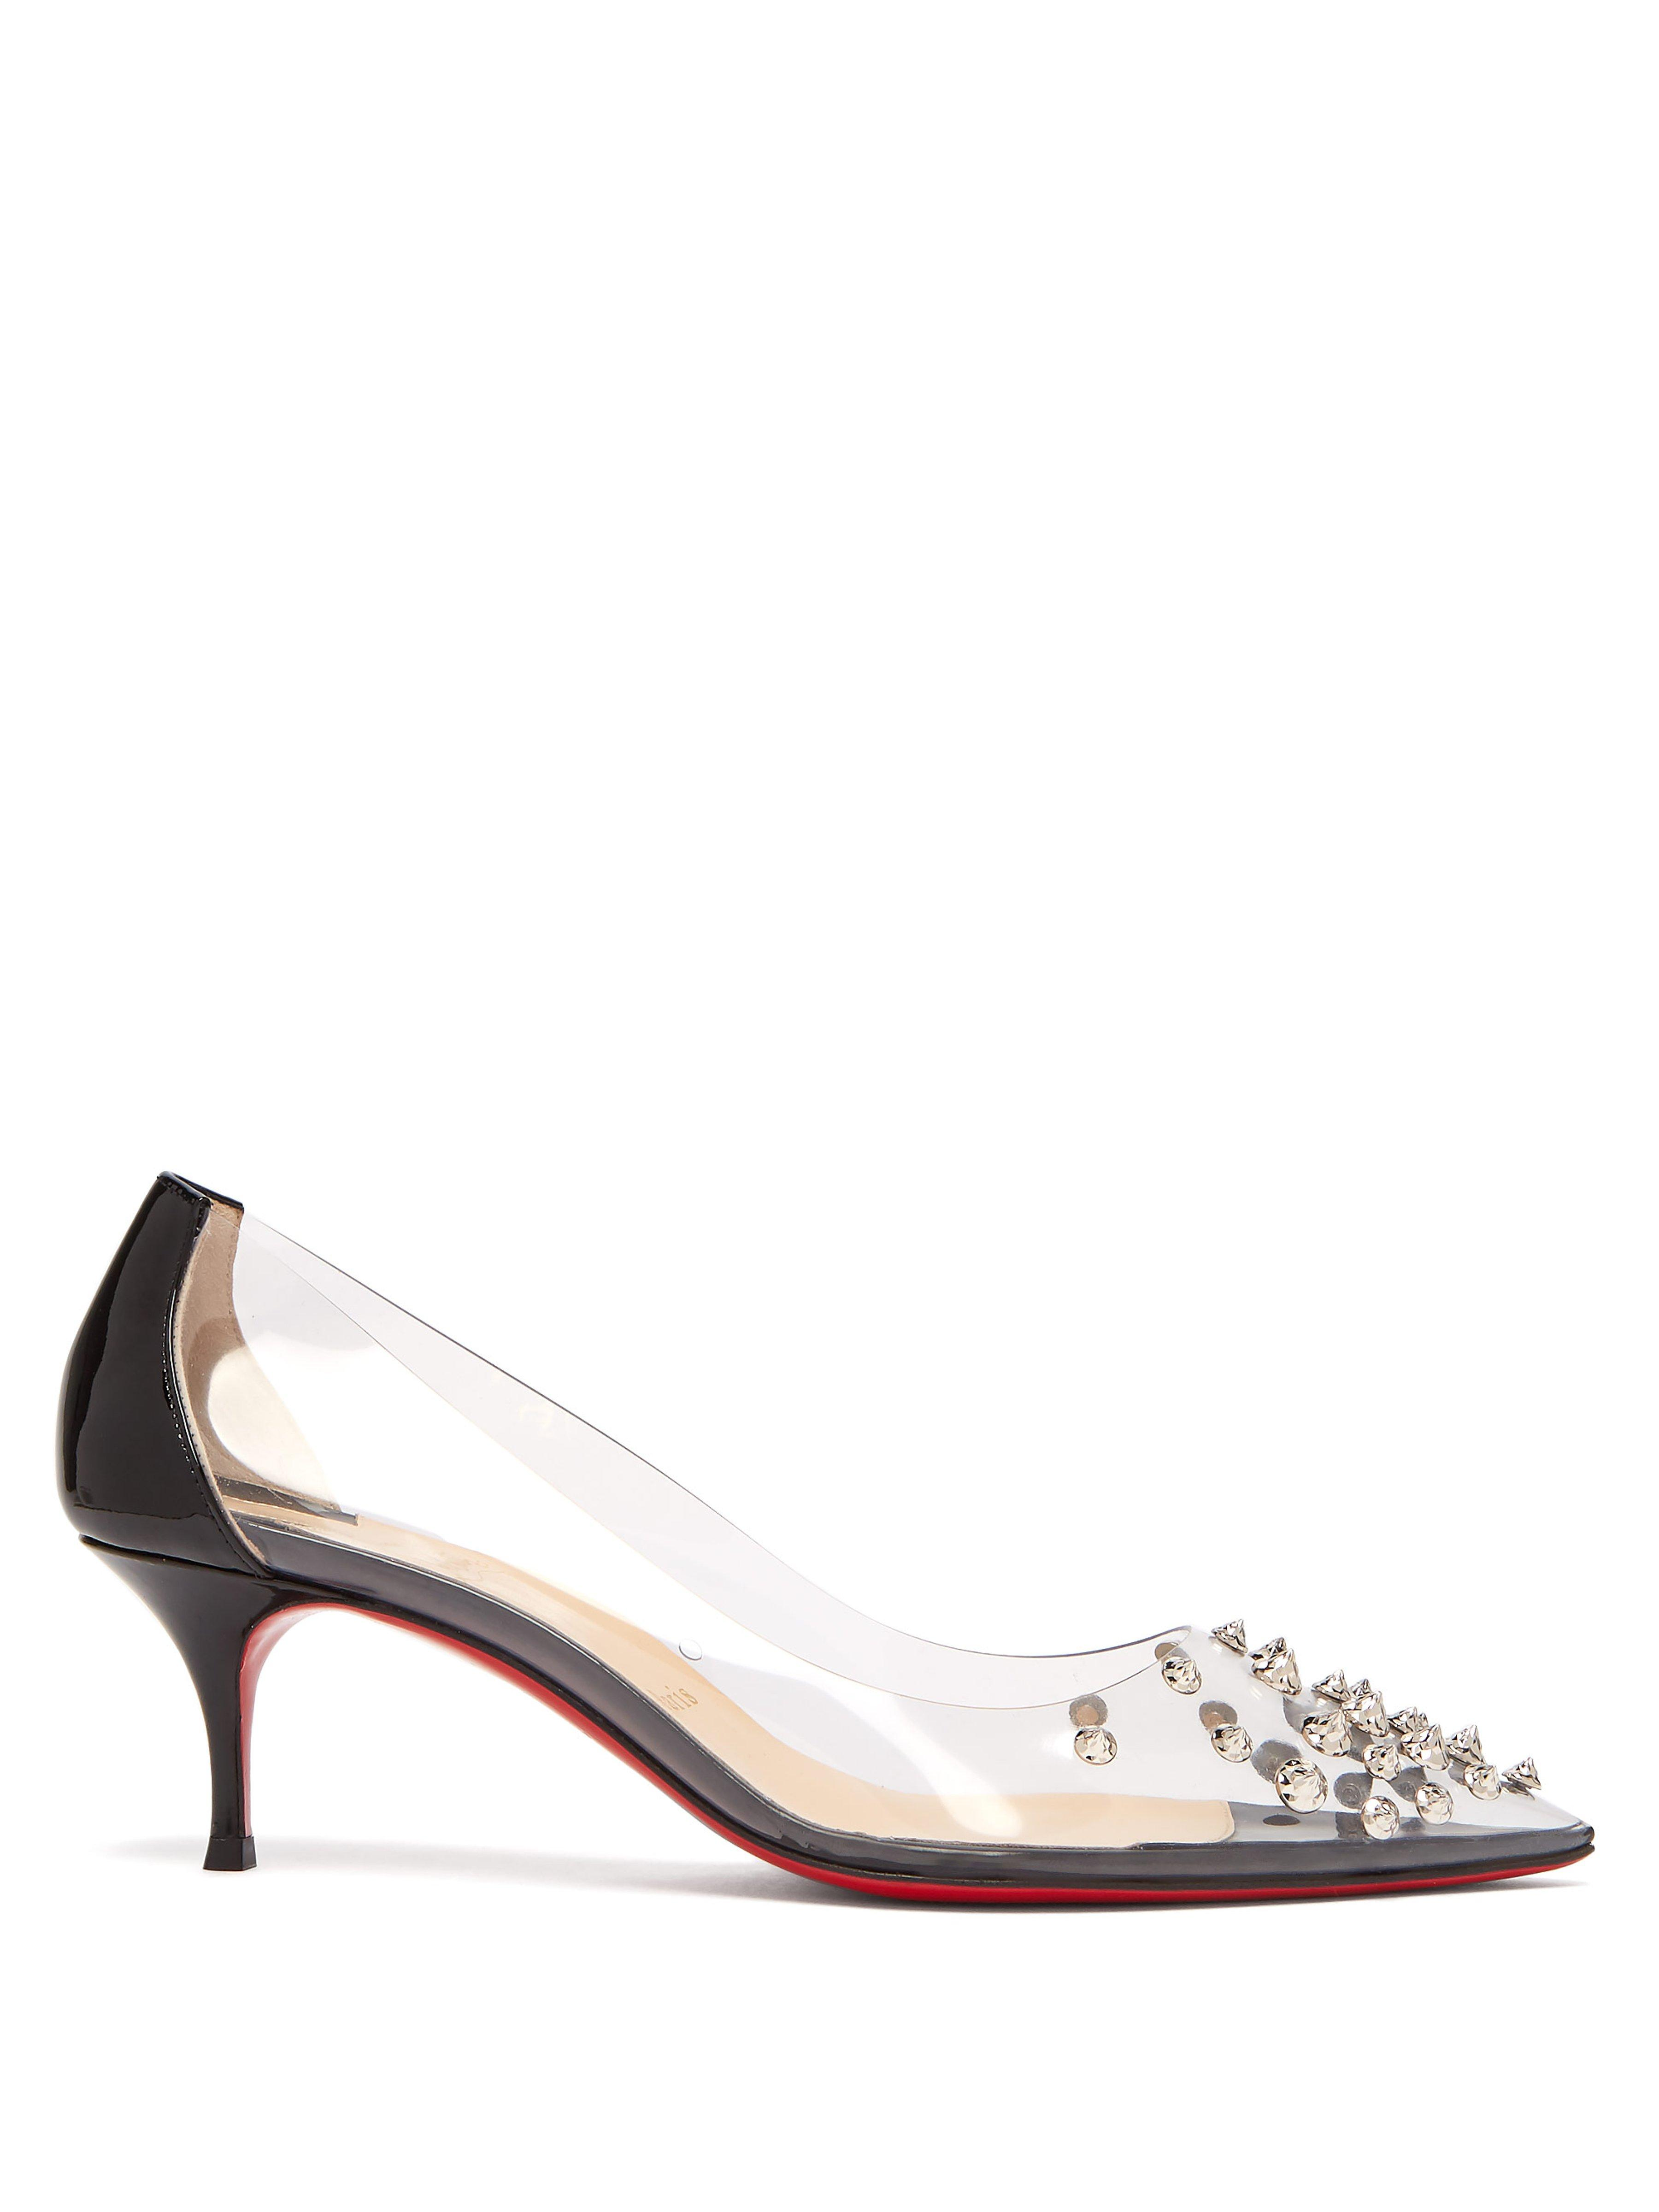 829fdcceb00 Christian Louboutin Black Collaclou 55 Spiked Pvc And Patent-leather Pumps